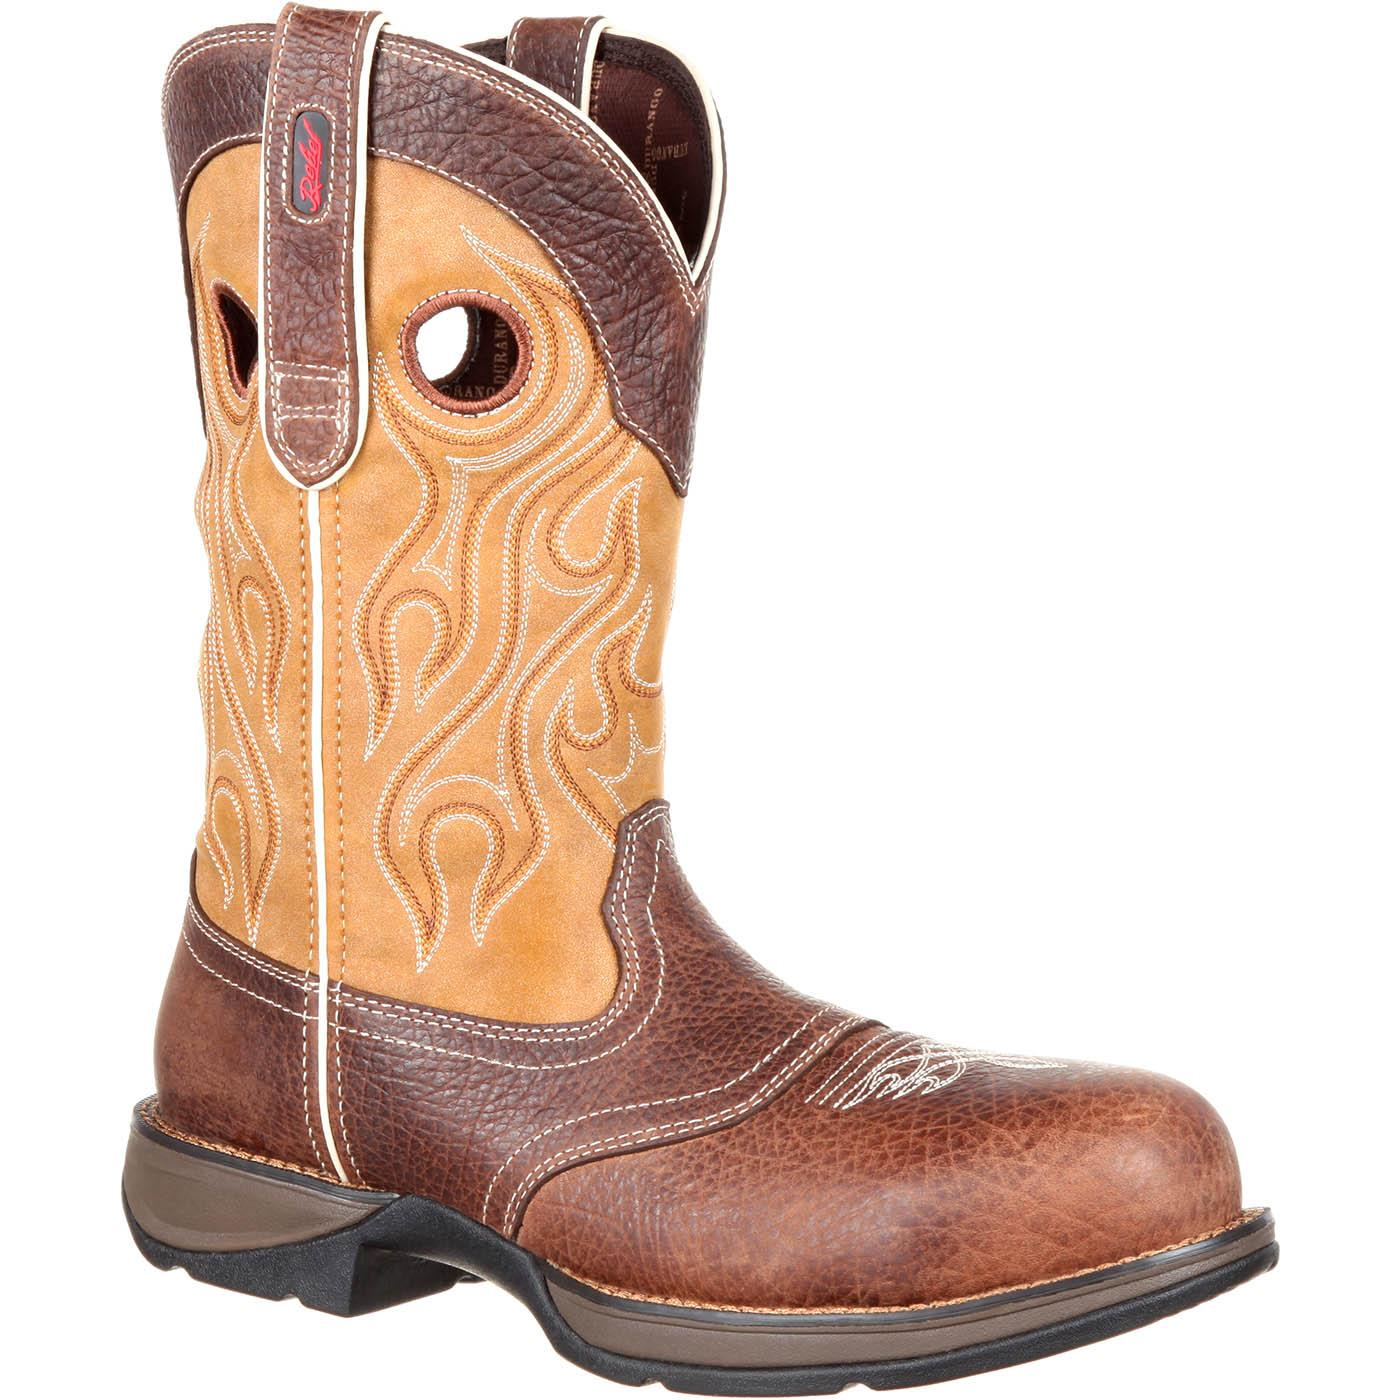 Rebel by Durango Composite Toe Waterproof Saddle Western Boot